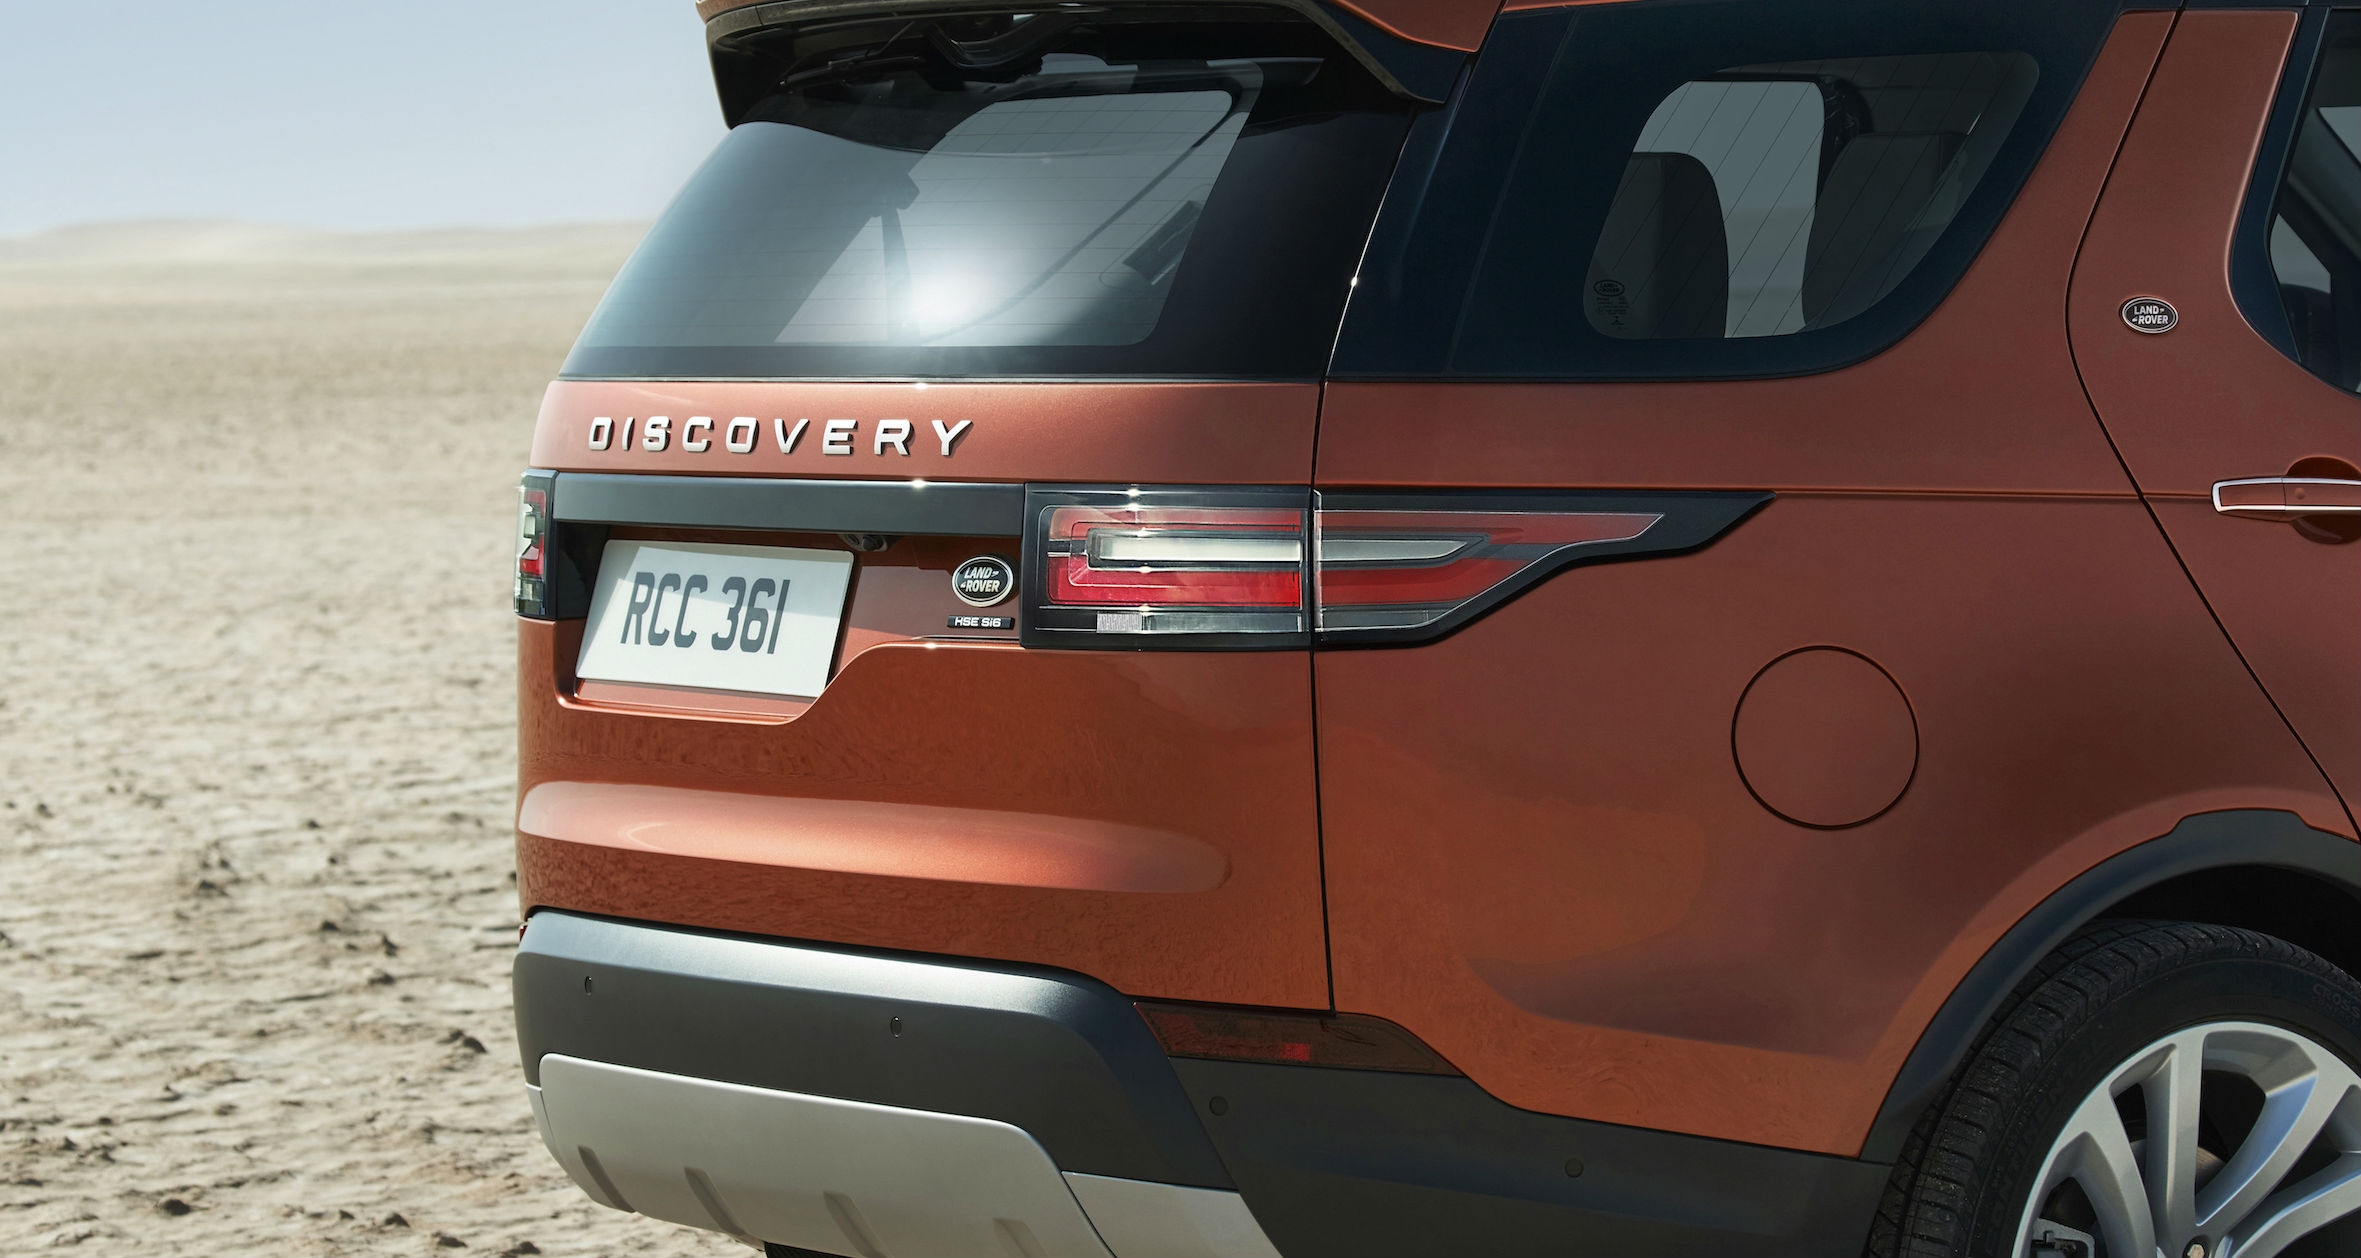 2017_land_rover_discovery_overseas_10